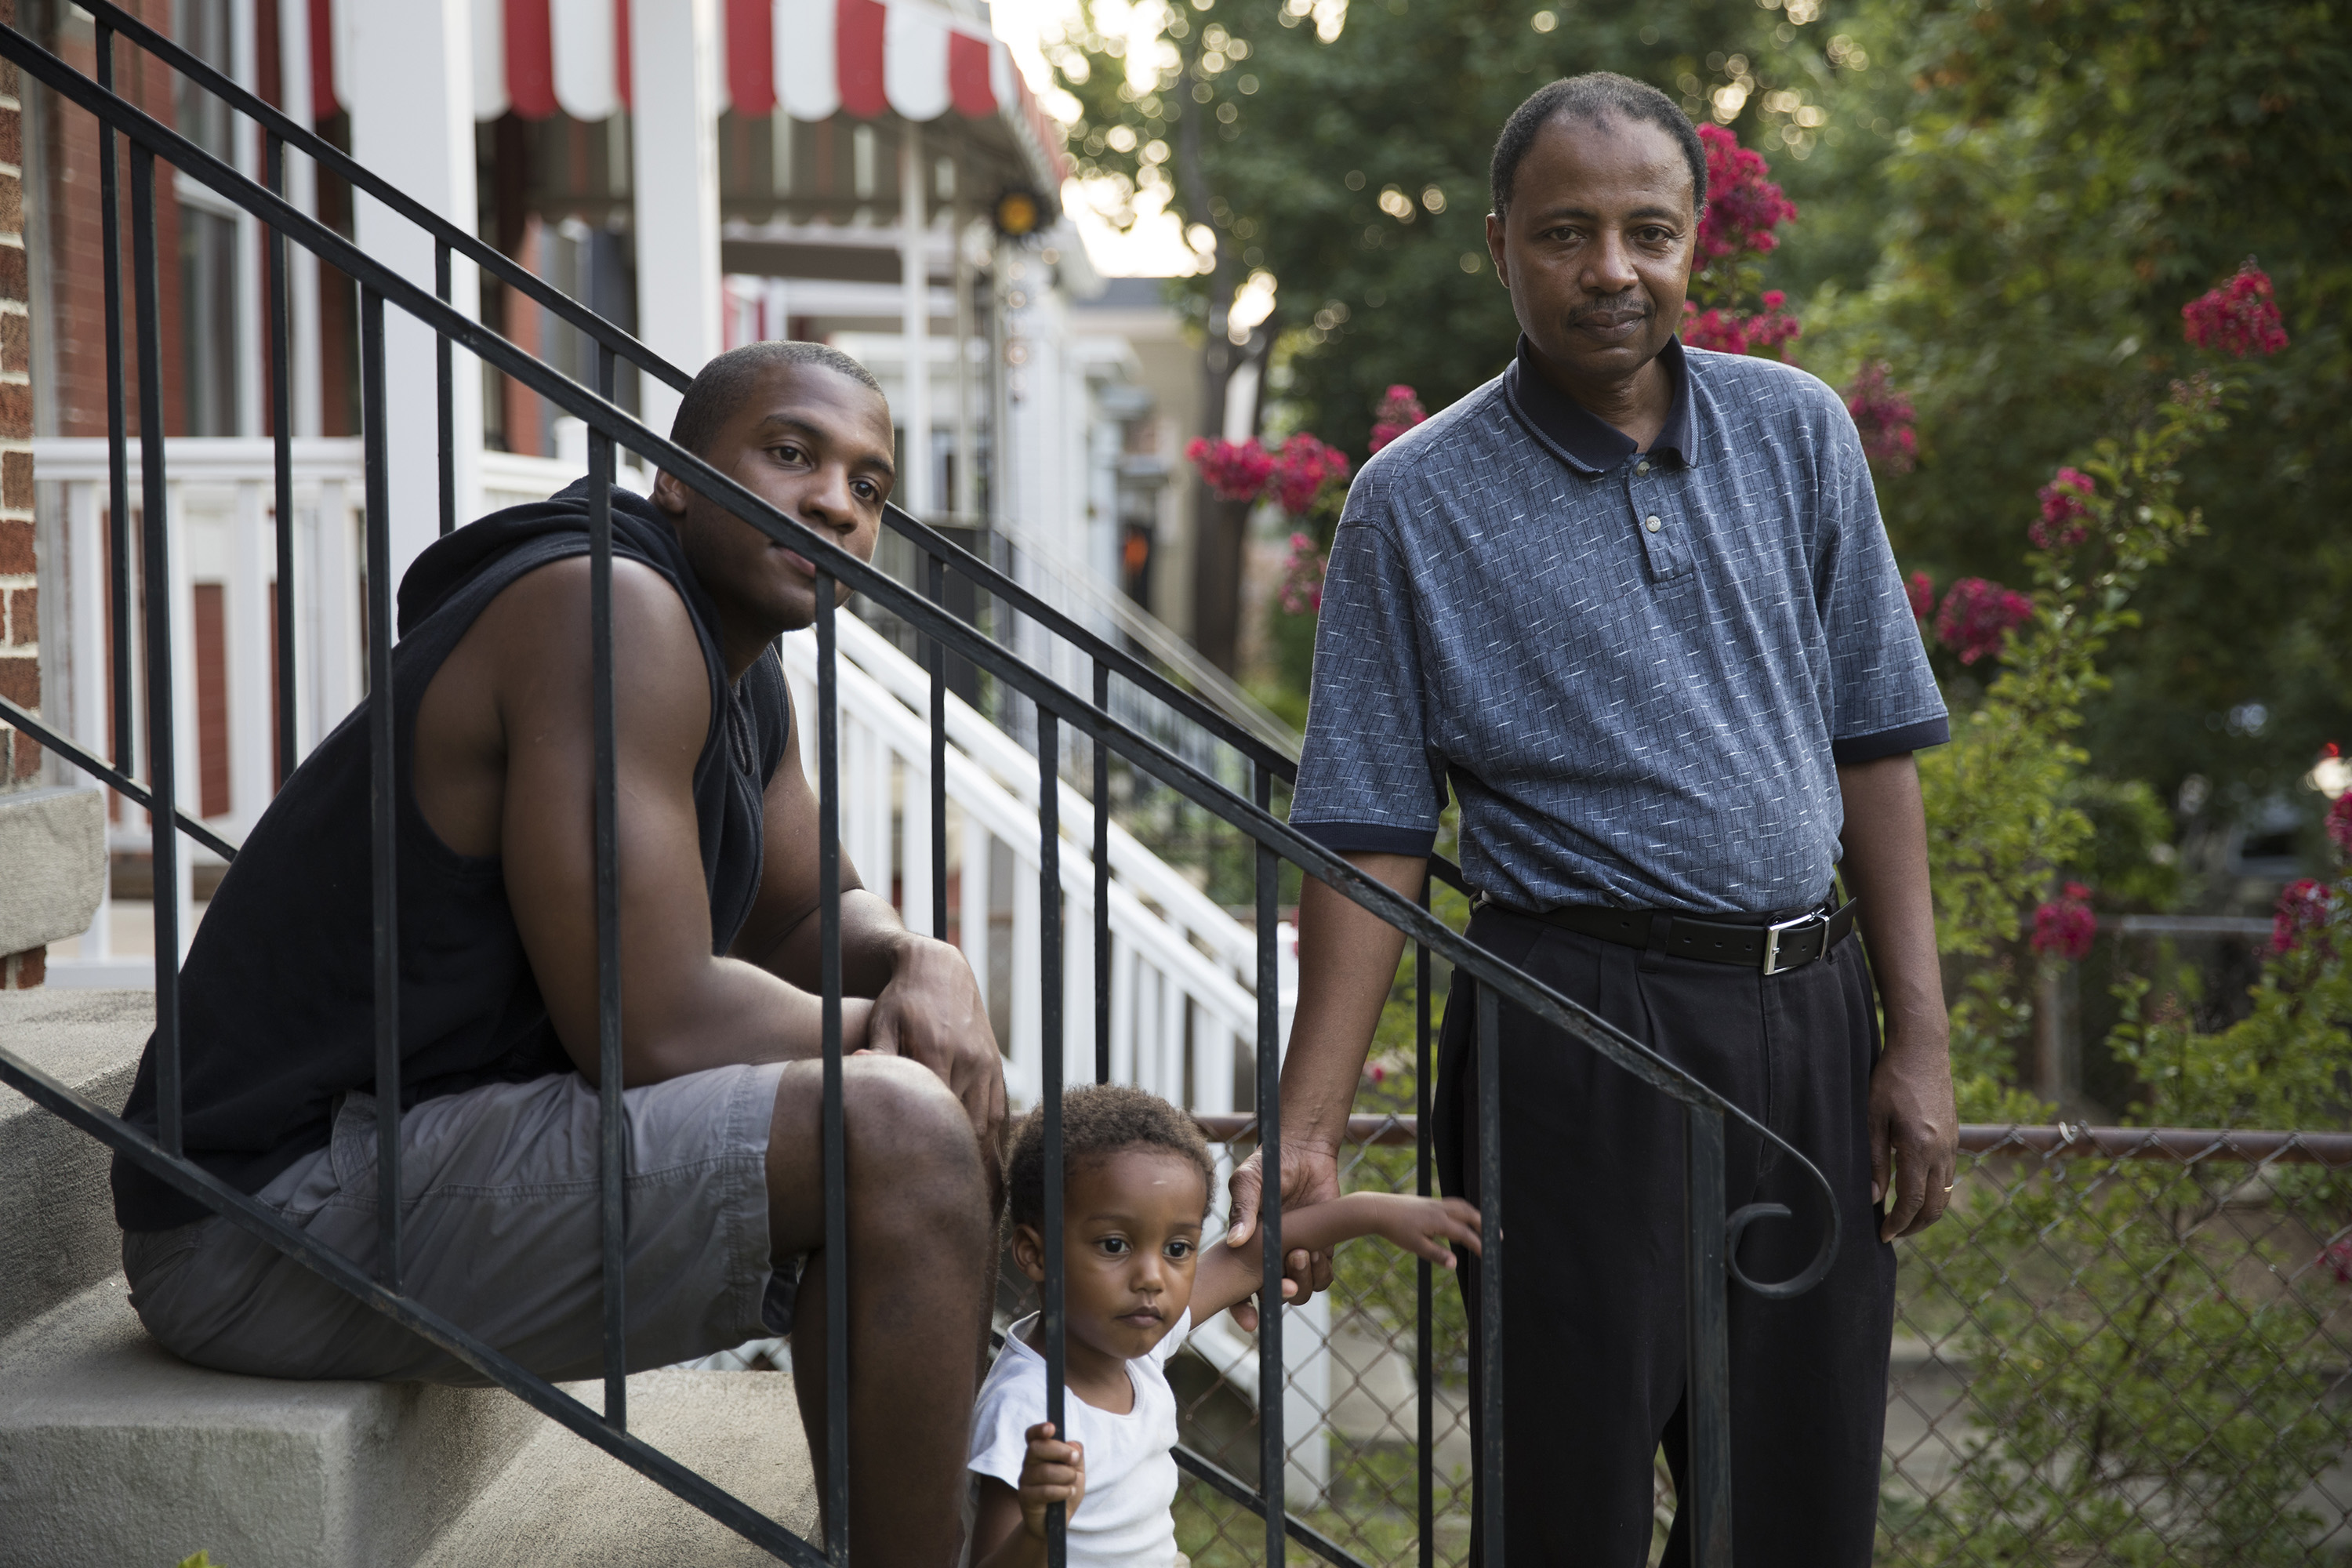 They Don't Understand': Howard Neighbors Search For Solutions After